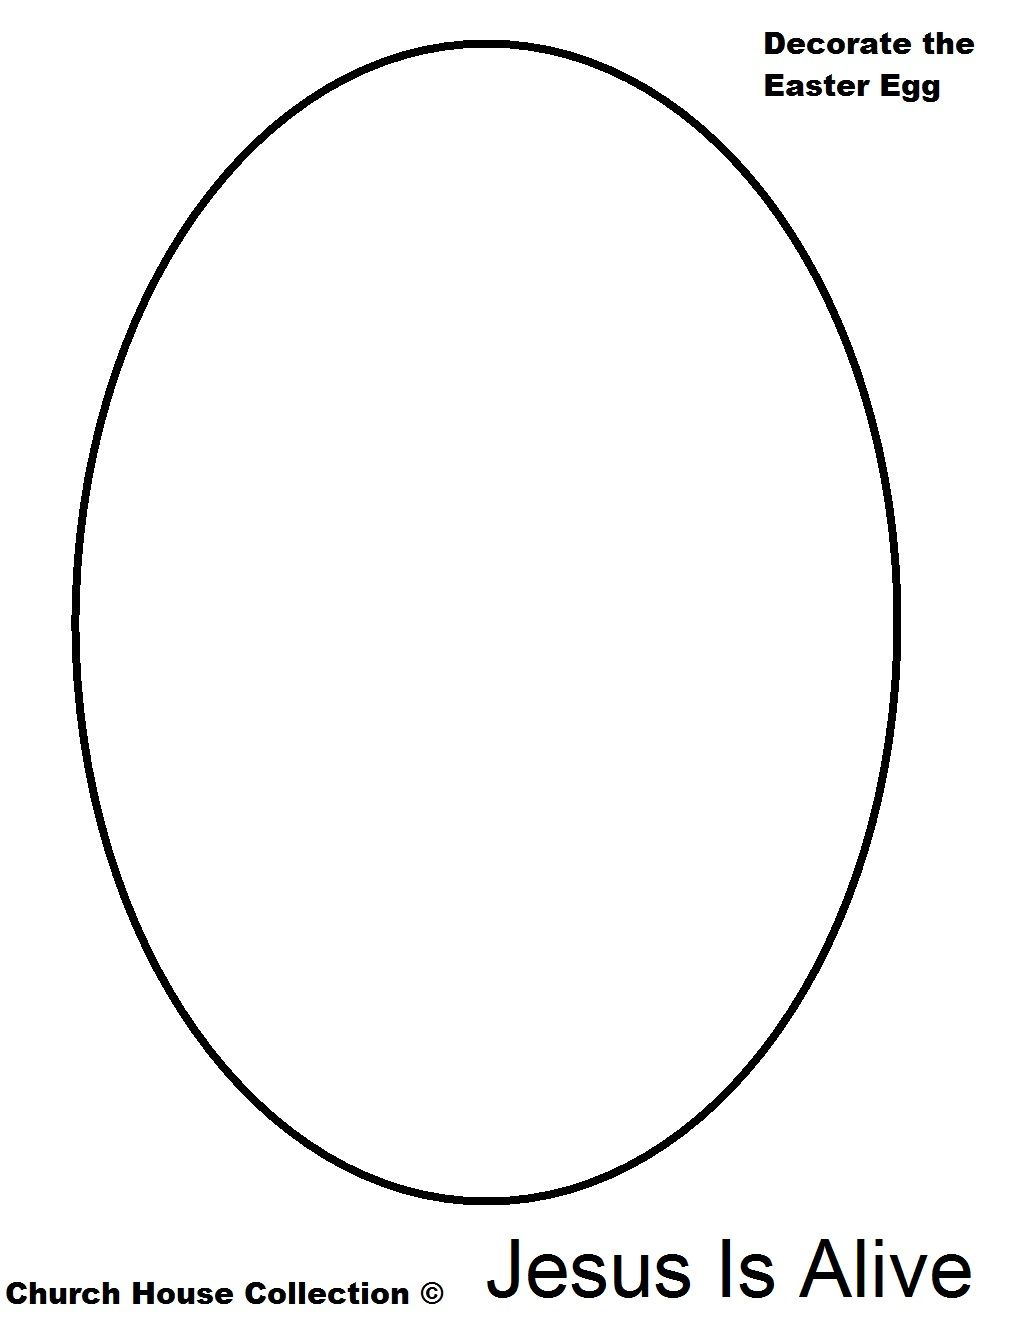 Easter Egg Coloring Page Jesus Is Alive.jpg 1,019×1,319 pixels ...